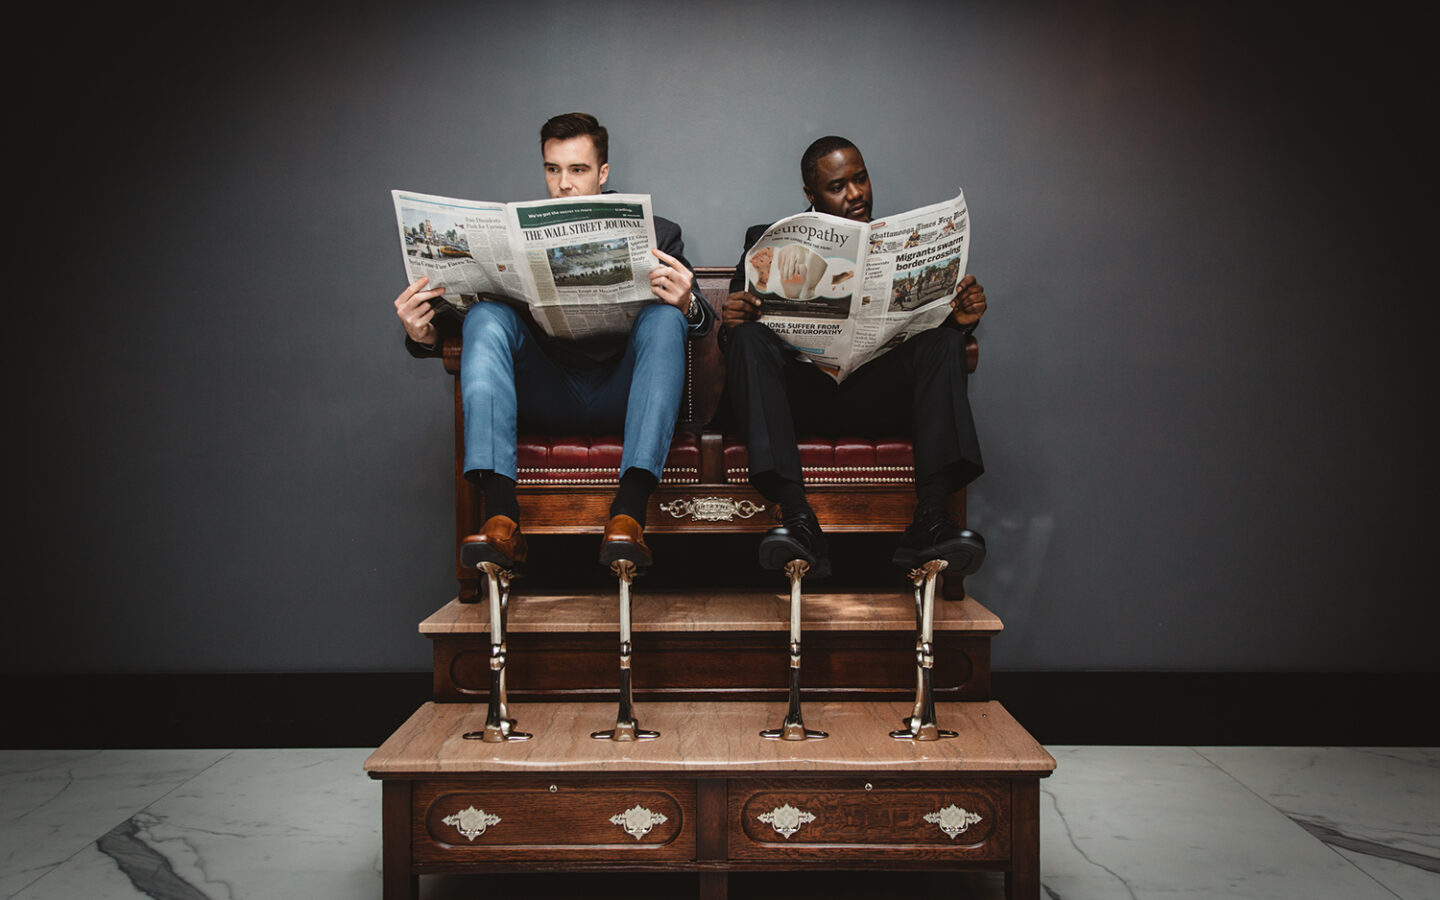 men on shoe shine chairs reading the newspaper